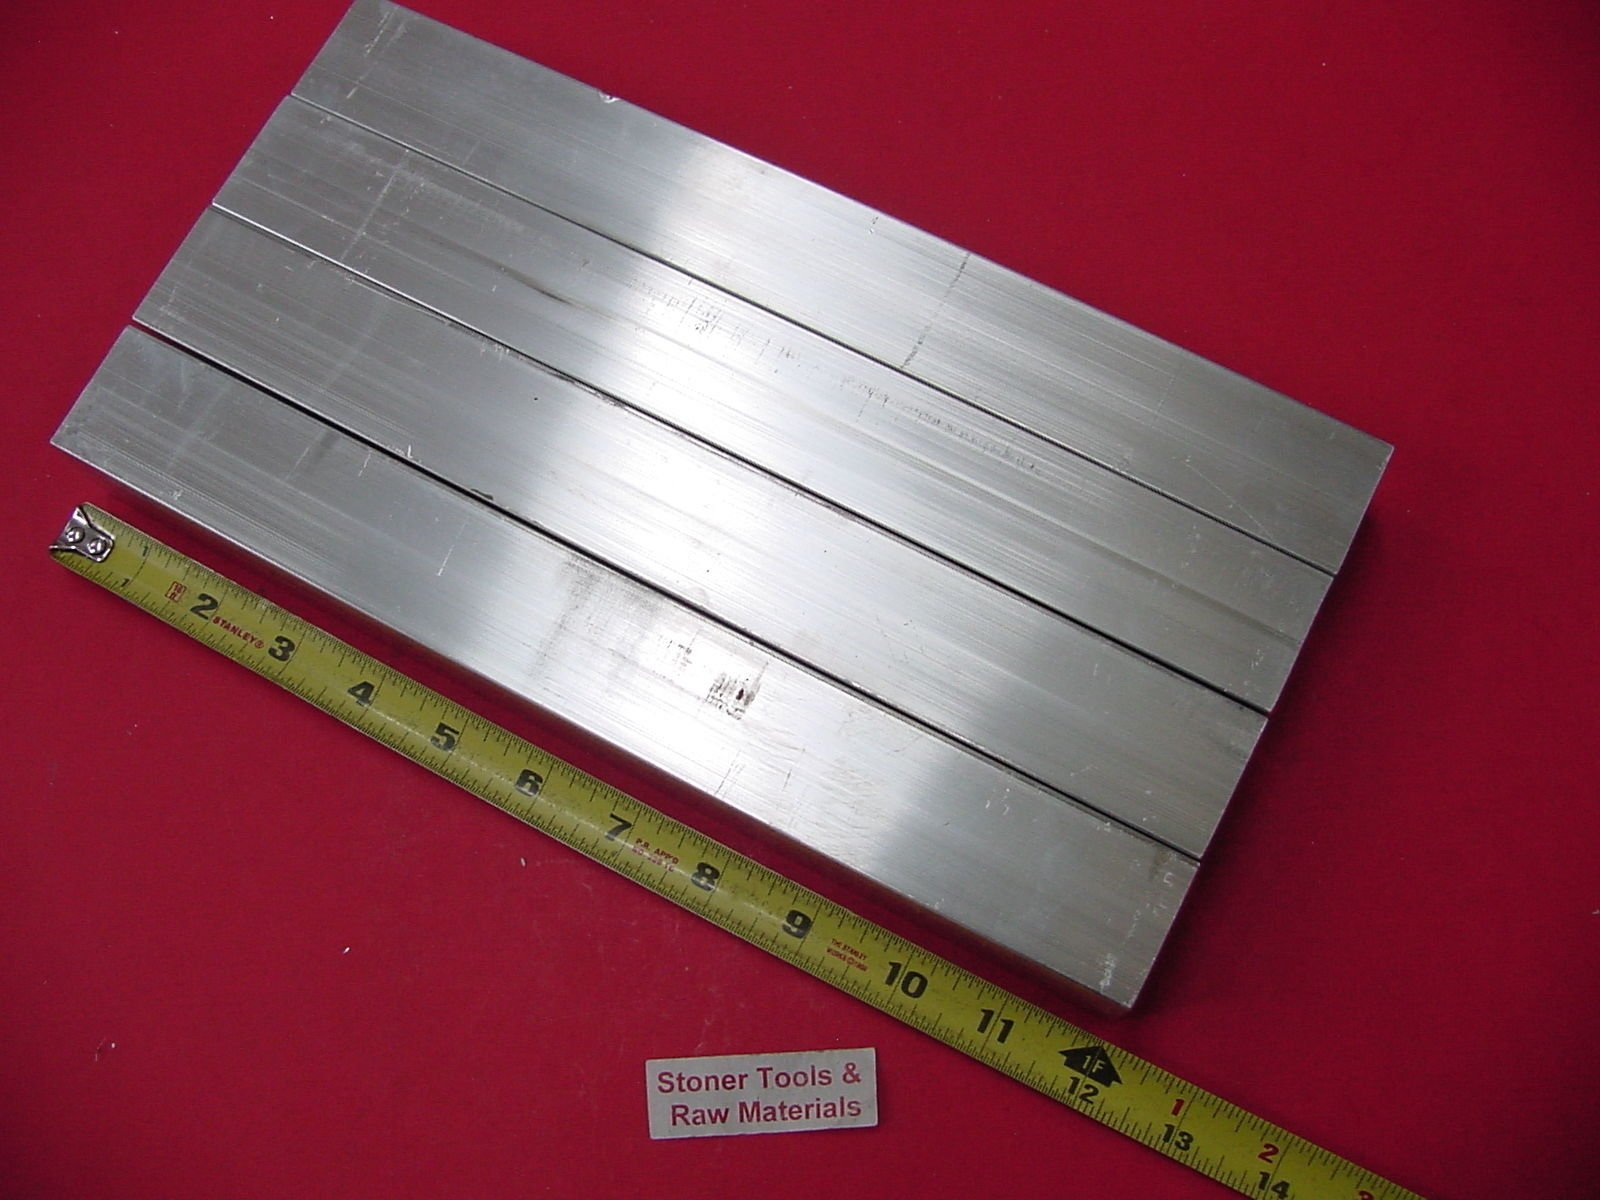 4 Pieces 1-1/2''x 1-1/2''x 1/8'' Wall x 12'' Long Aluminum Square Tube 6063 T52 Extruded Finish not Sanded or Polished by Stoner Metals